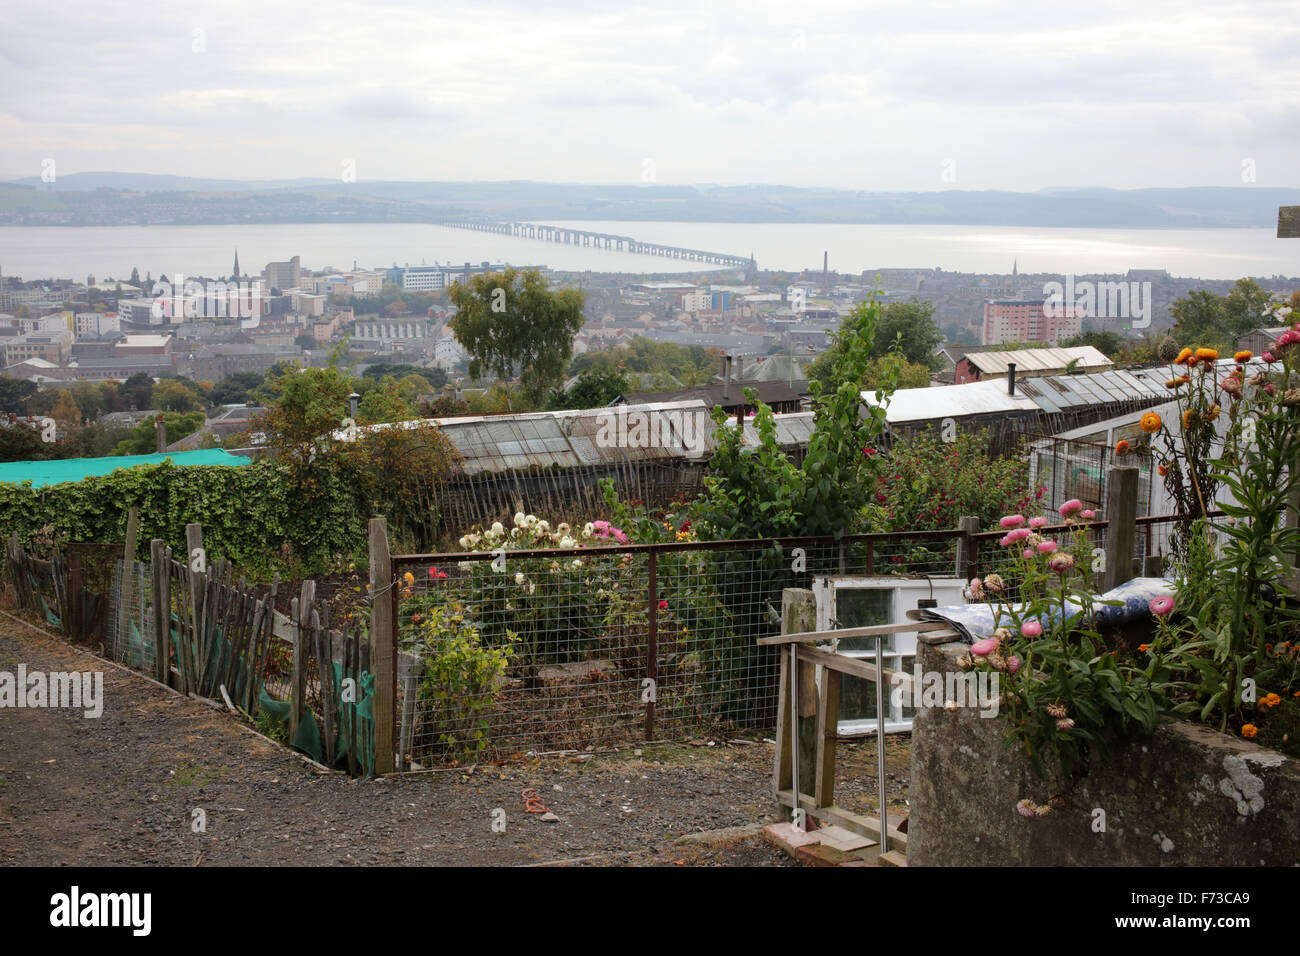 Allotments on the hill of Dundee Law with view on the city - Dundee city - Angus - Scotland - UK - Stock Image